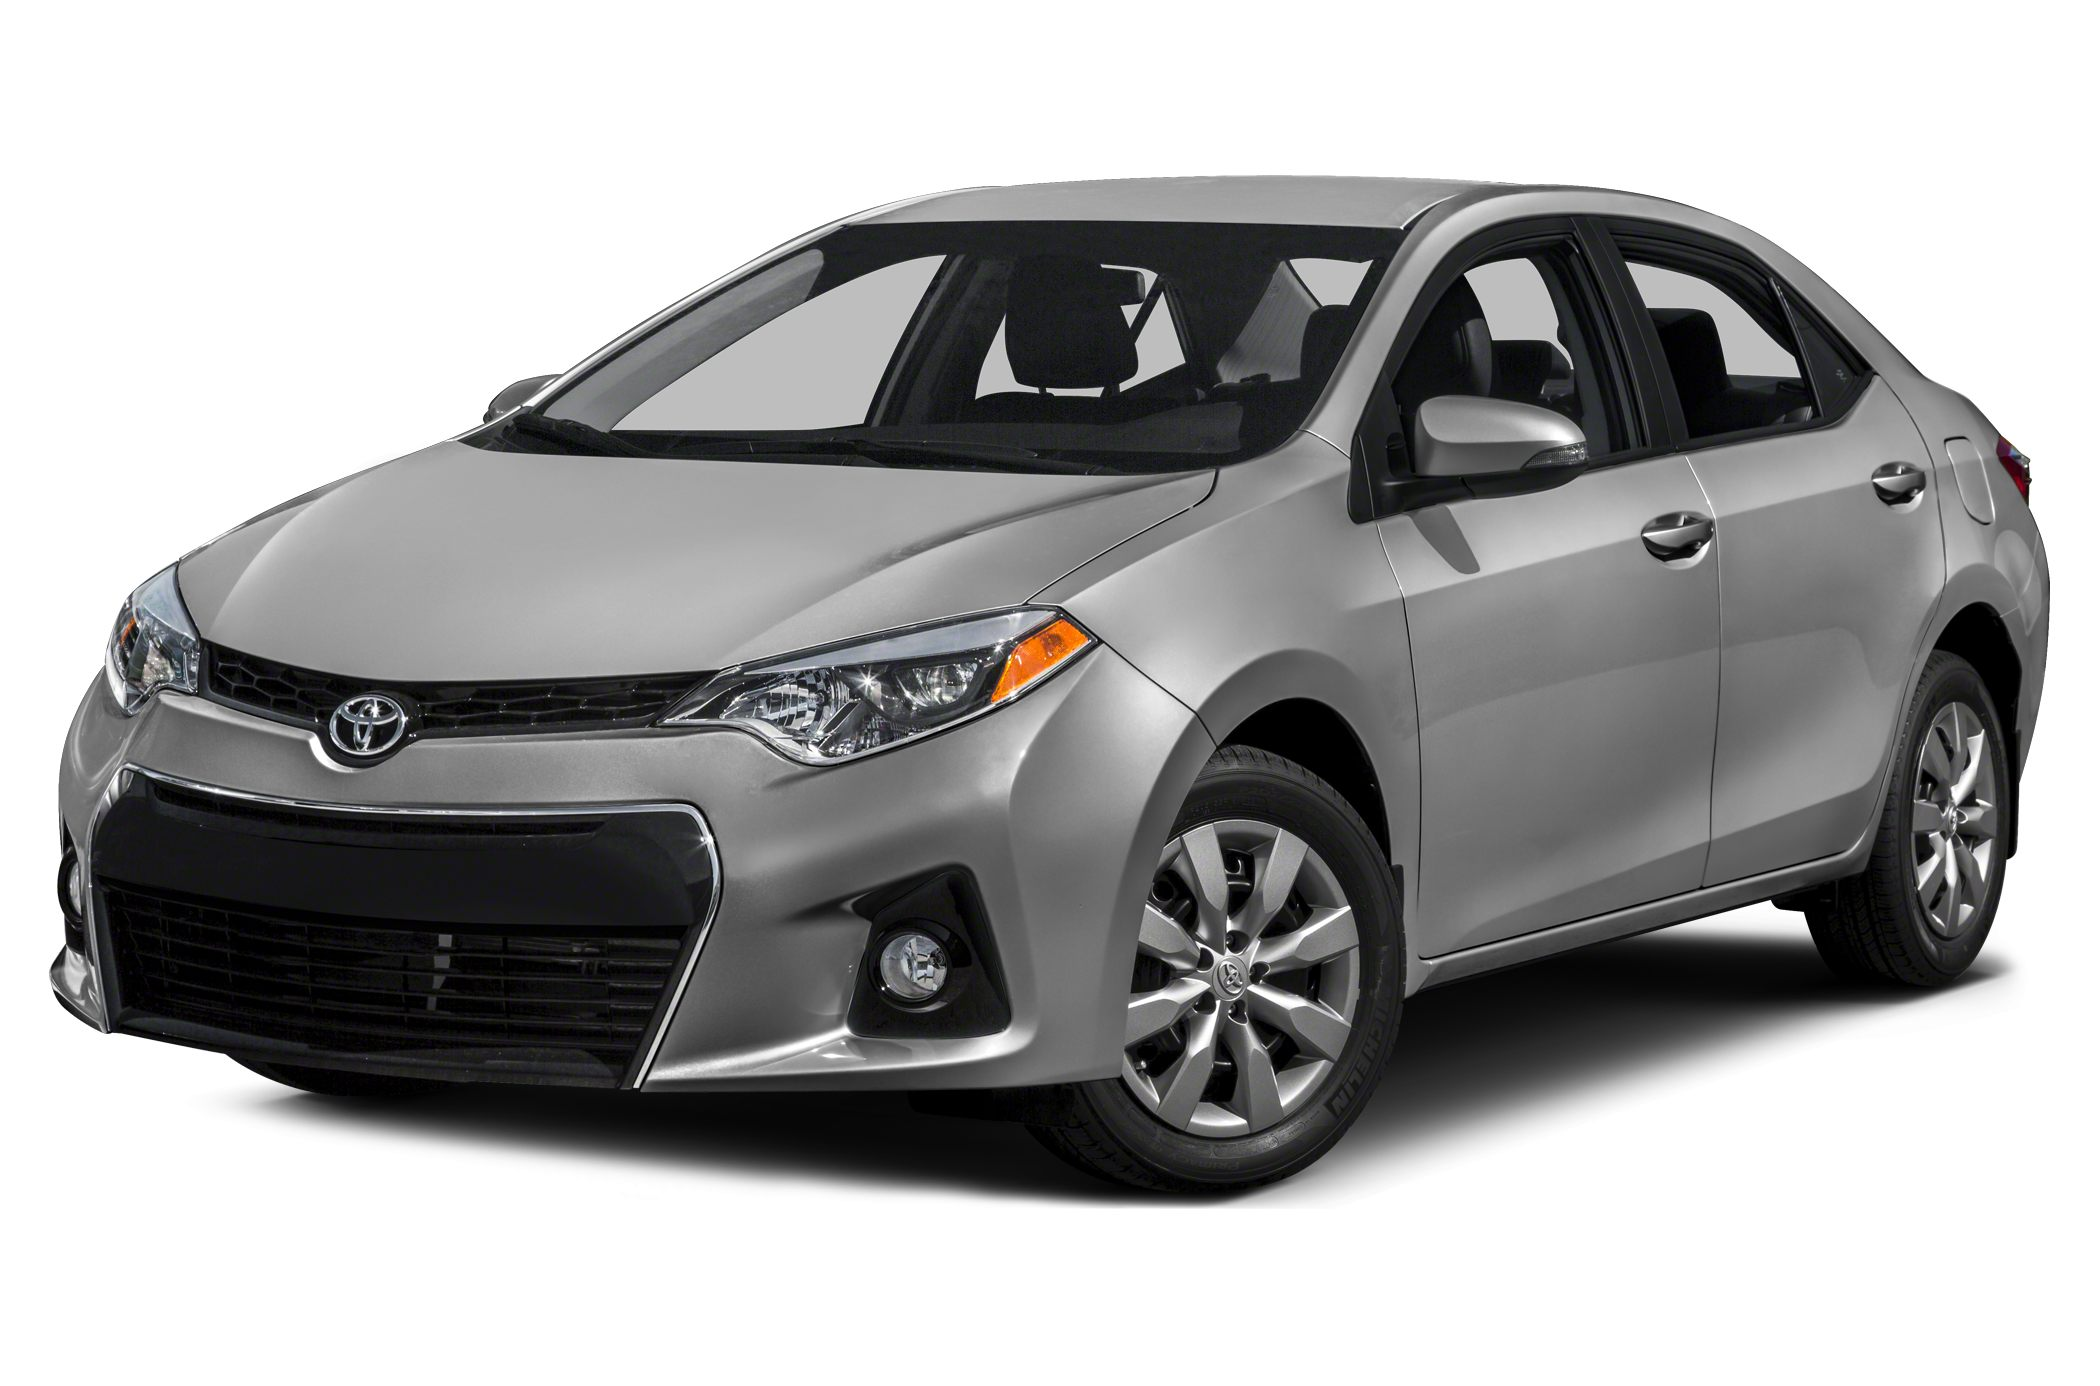 2015 Toyota Corolla S Plus Sedan for sale in Atlanta for $23,429 with 0 miles.